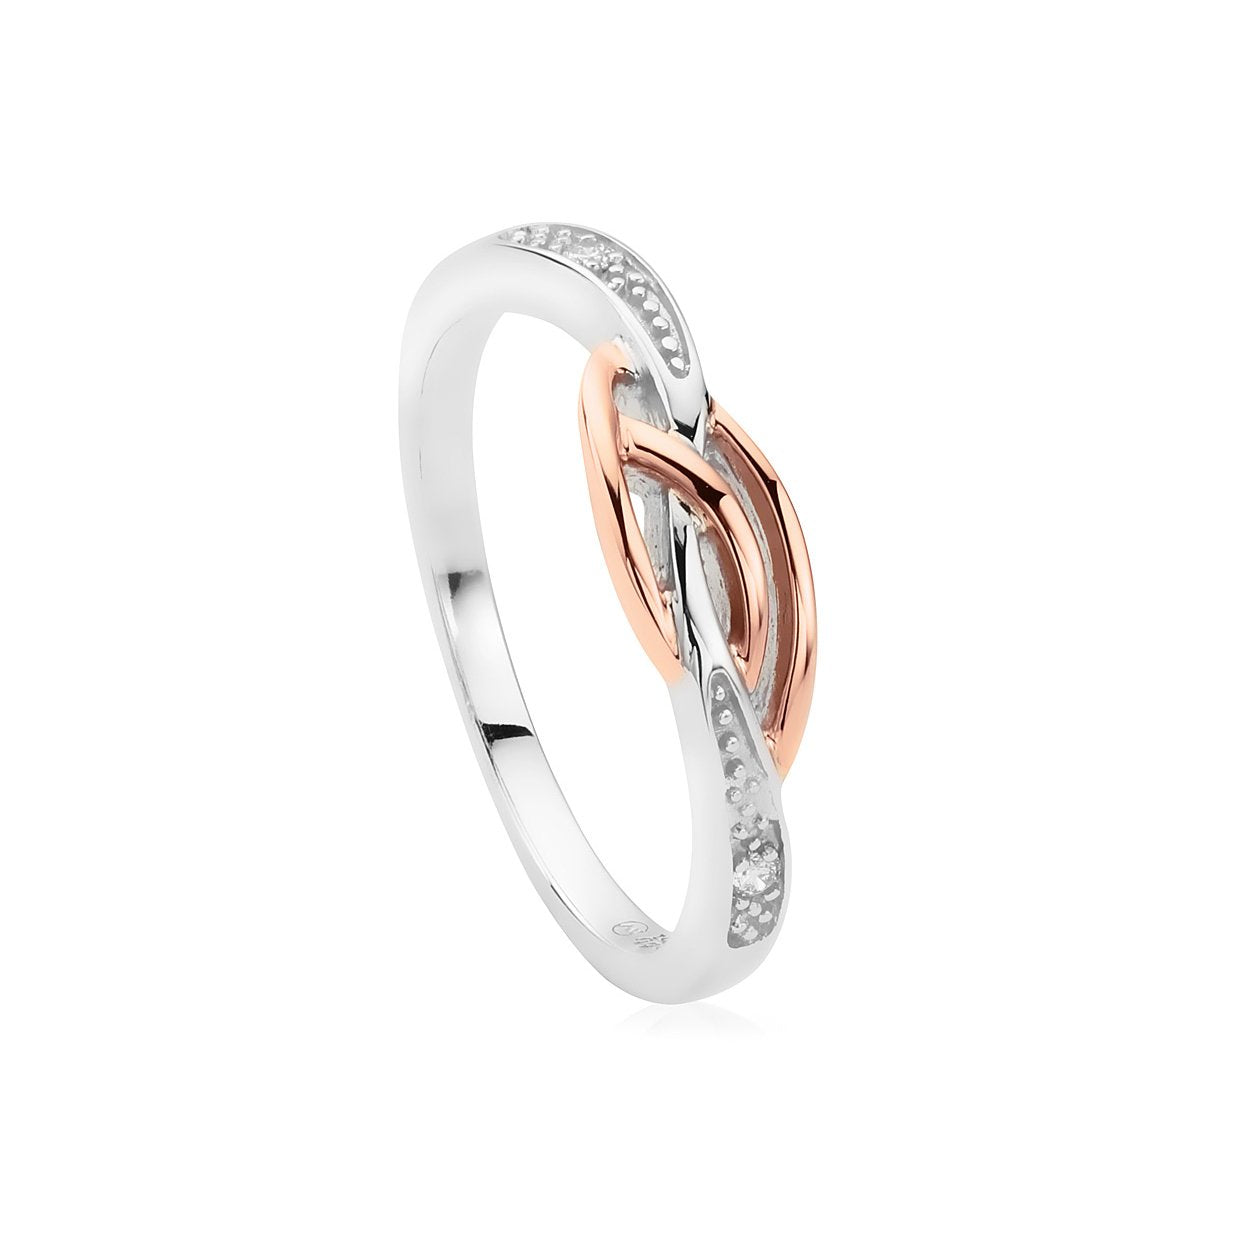 43c0dec2e55ae Clogau Eternal Love Sterling Silver Affinity Stacking Ring